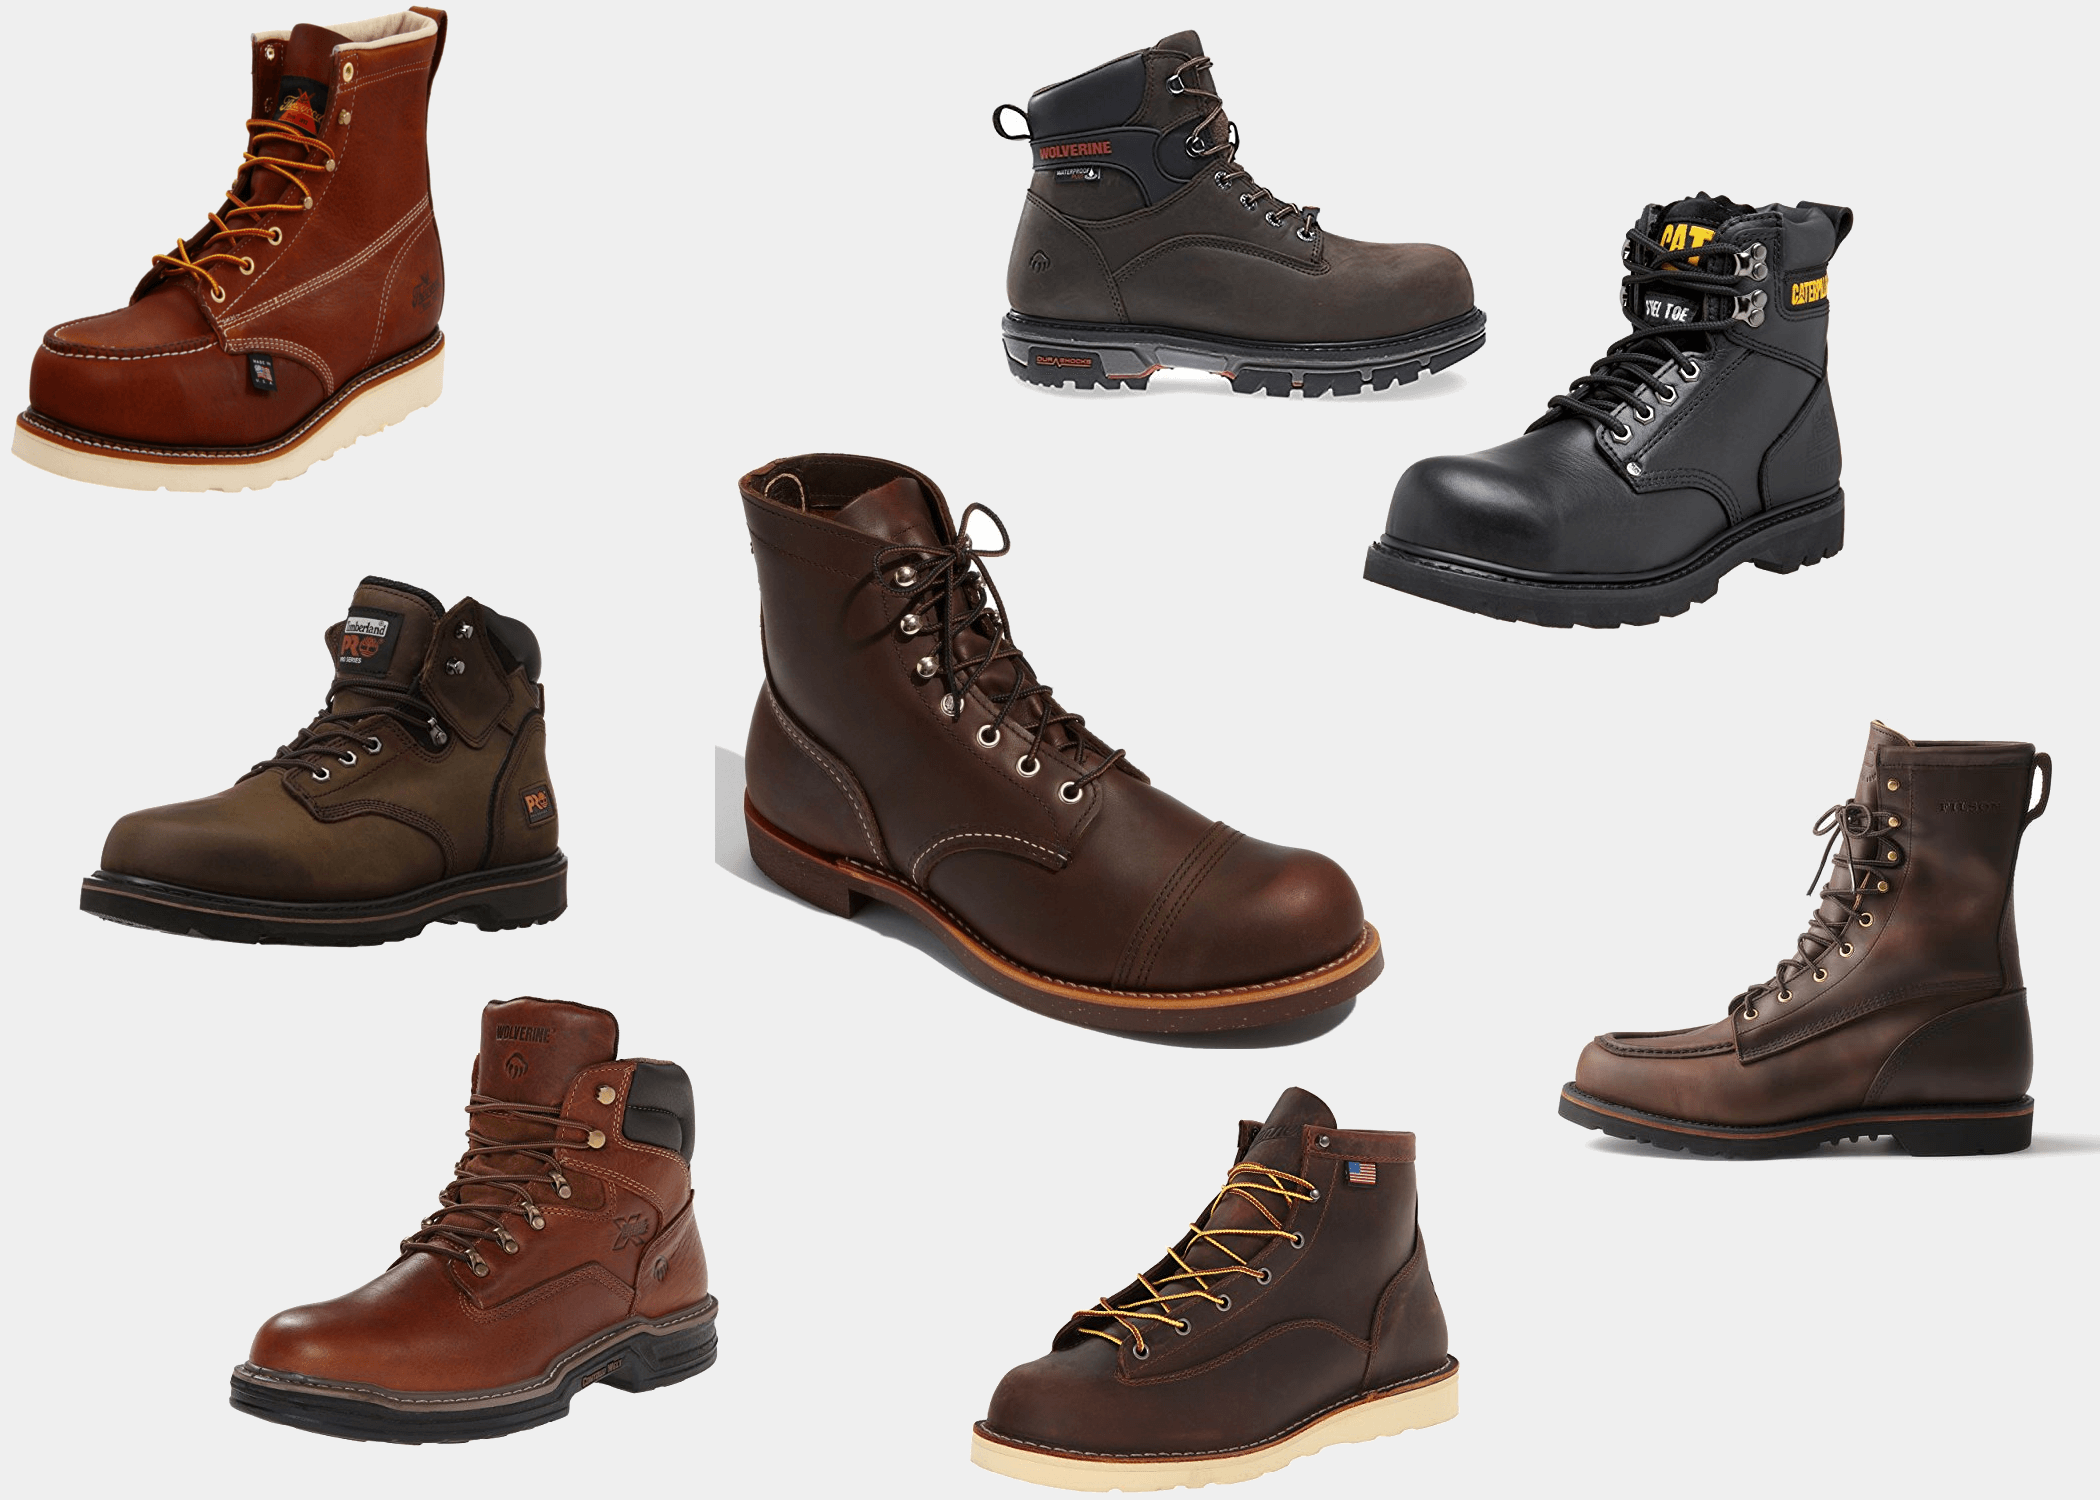 b902a6278f4 The 11 Best Work Boots for Men | Improb